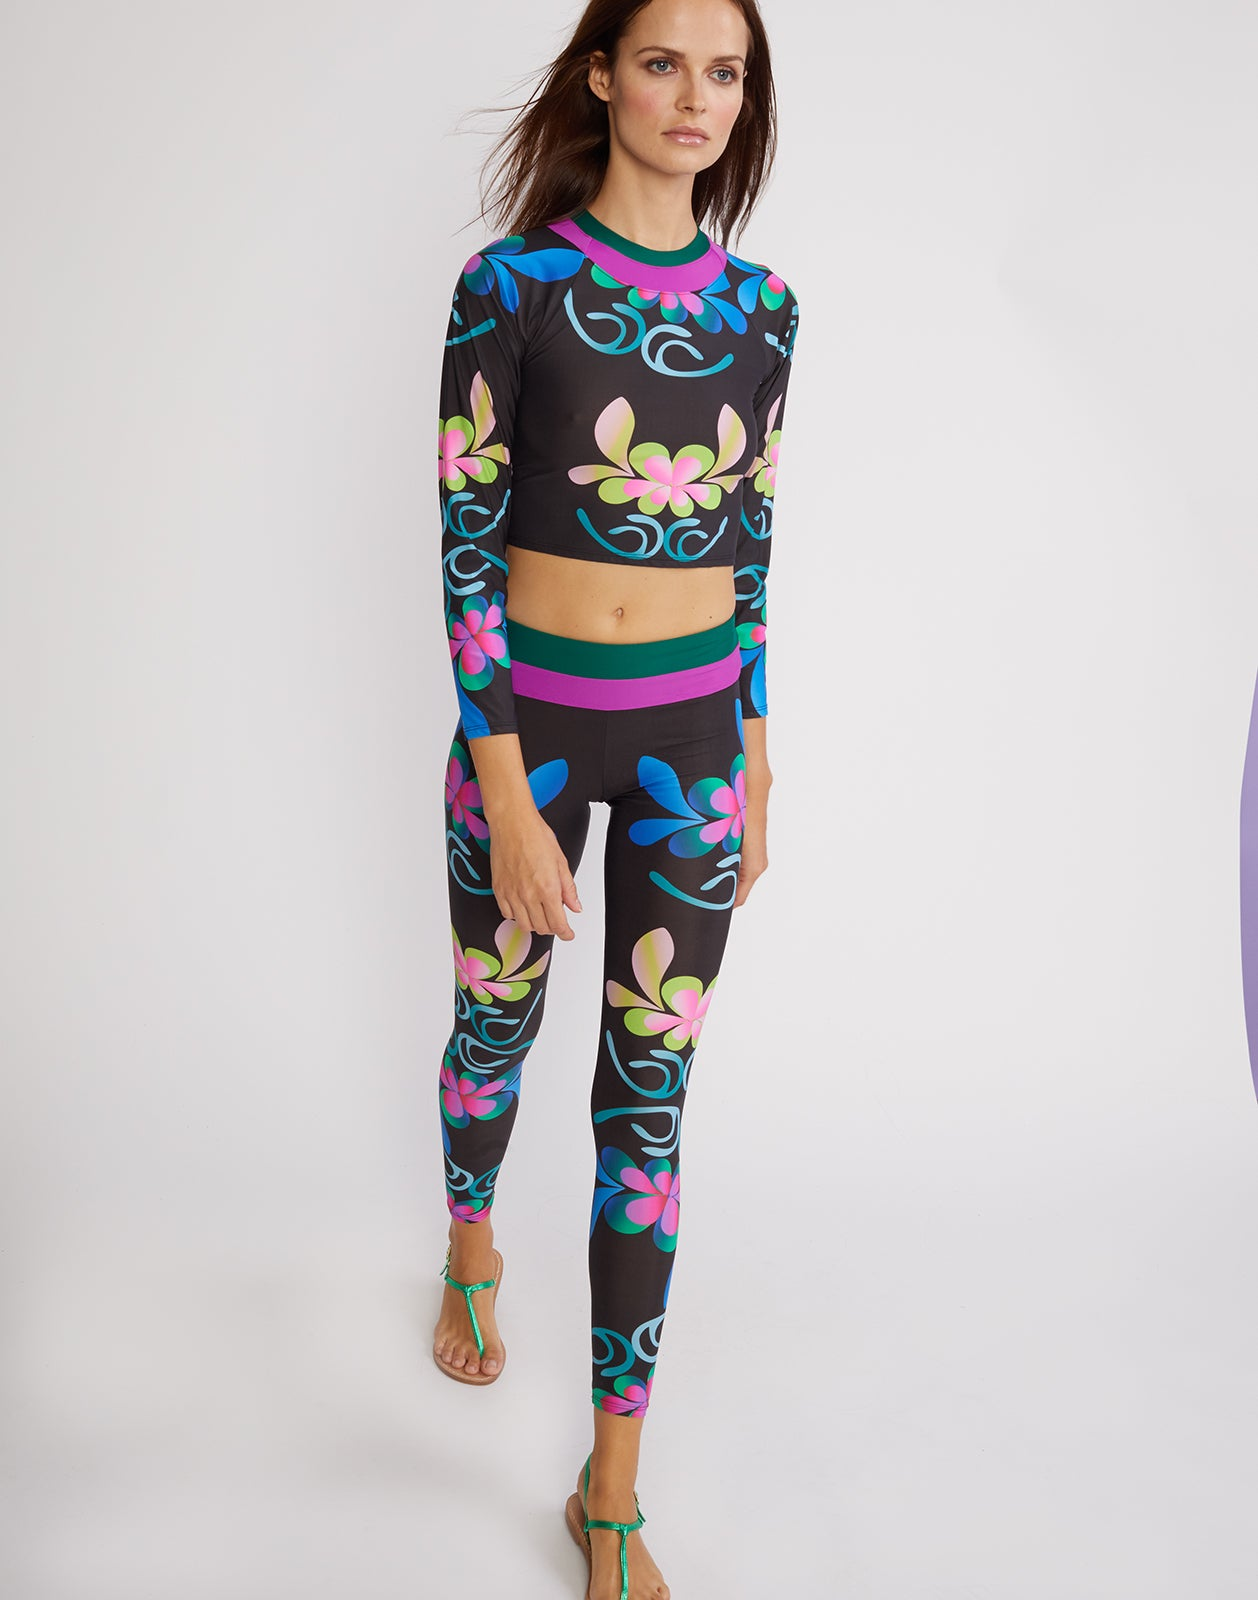 Full front view of the electric floral print surf and fitness legging.